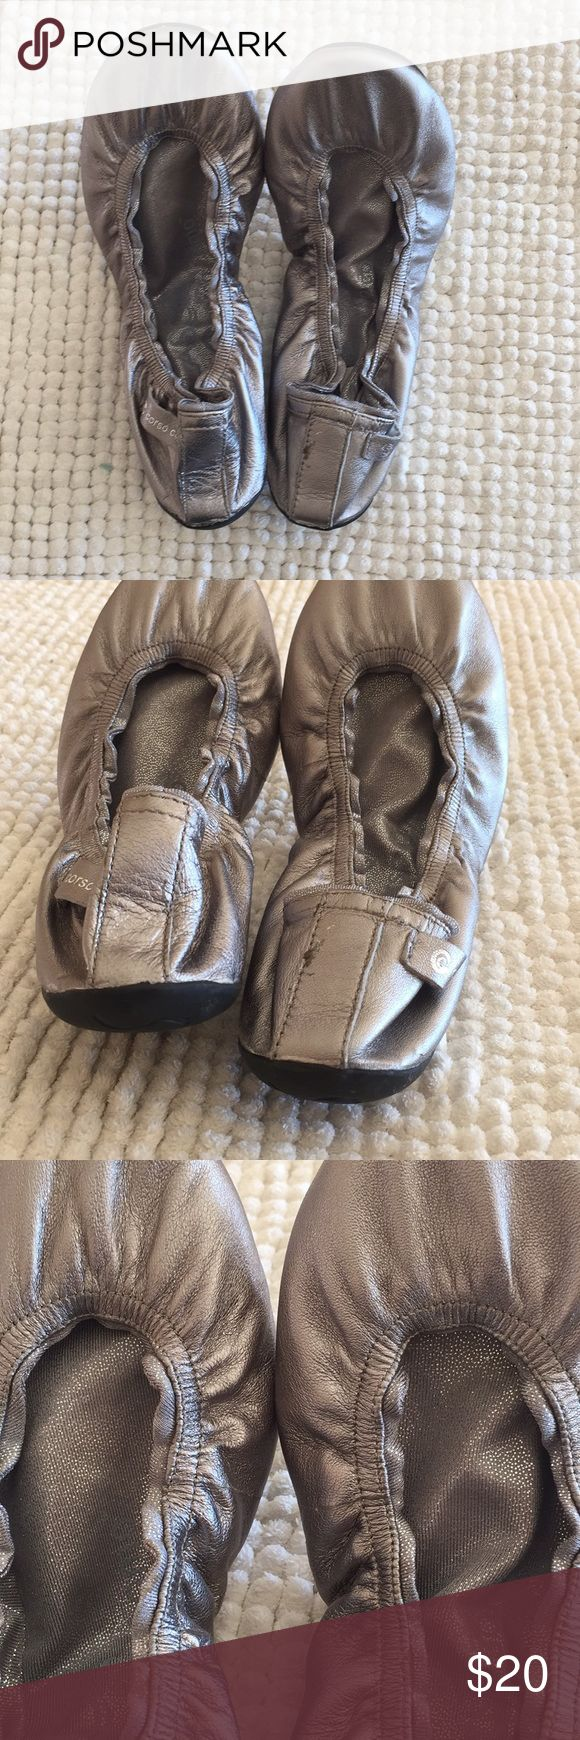 Real Leather Silver Metallic Ballet Flats These gorgeous silver ballet flats are easily folded up for storage in a purse or backpack. They're real leather and have a comfortable lining that keeps your feet dry and warm. They've never been worn. Corso Como Shoes Flats & Loafers